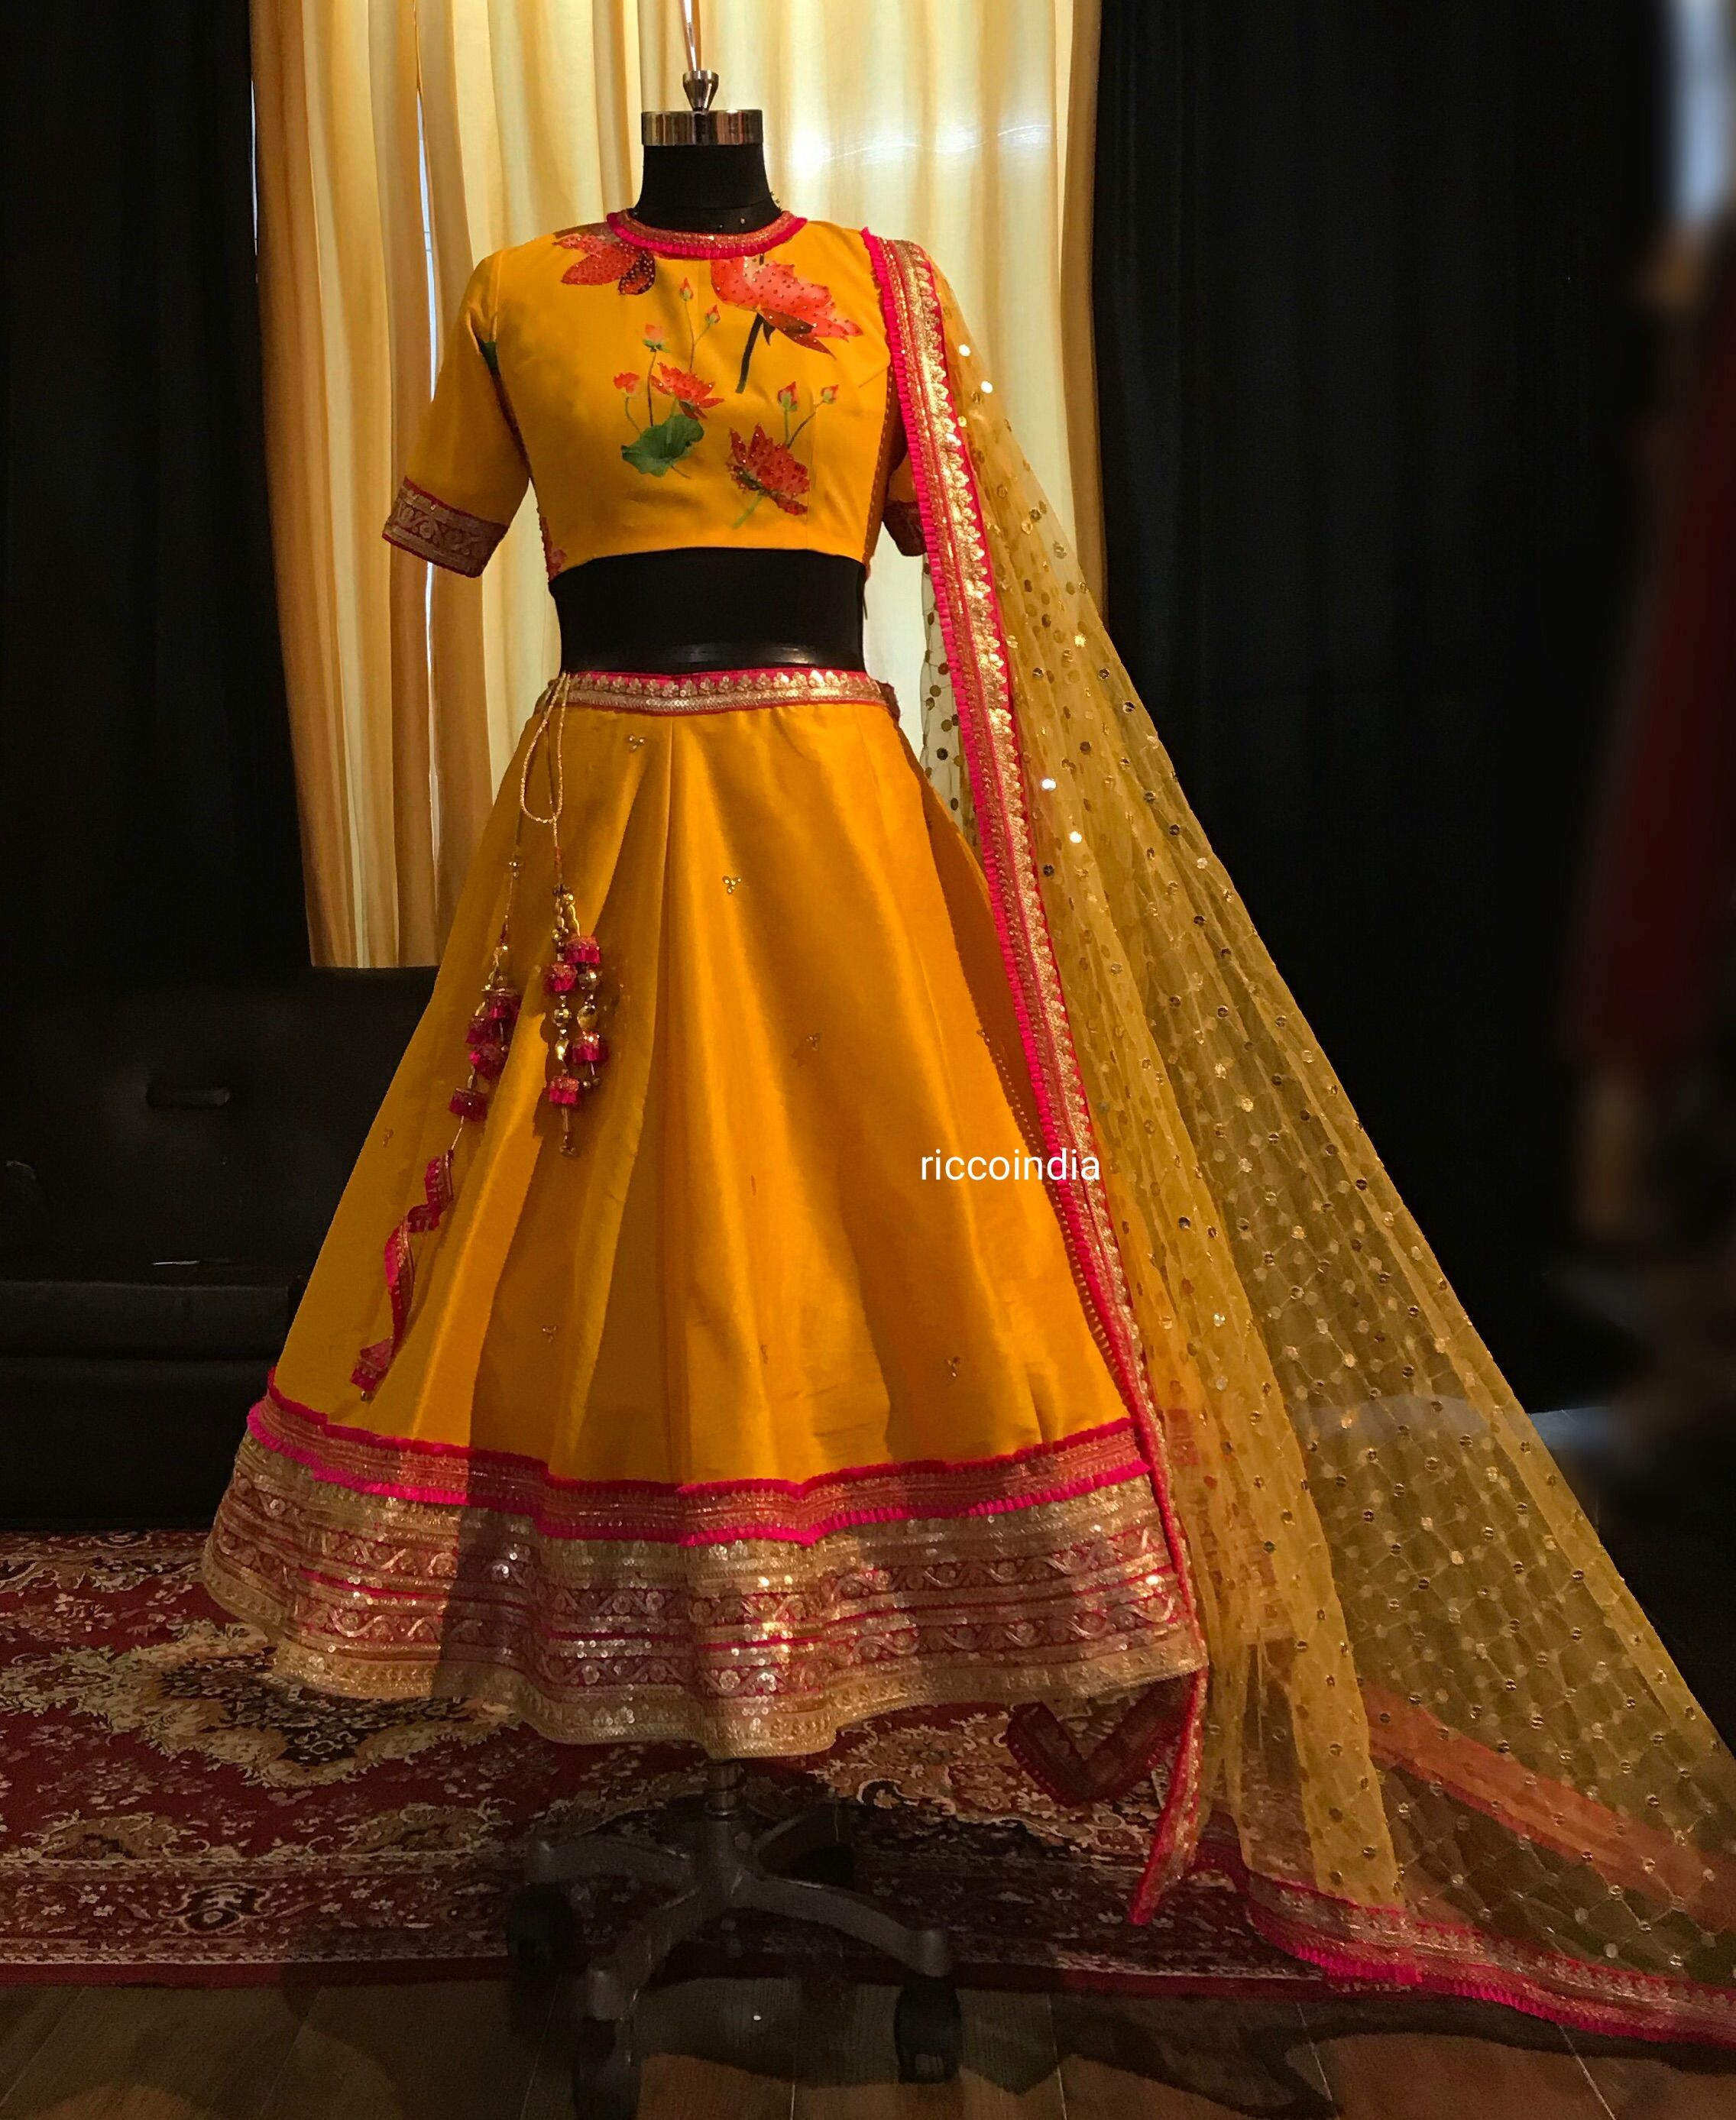 e2814a0fa81 Short Lehenga for mehendi with floral croptop and mustard and pink skirt  and dupatta.